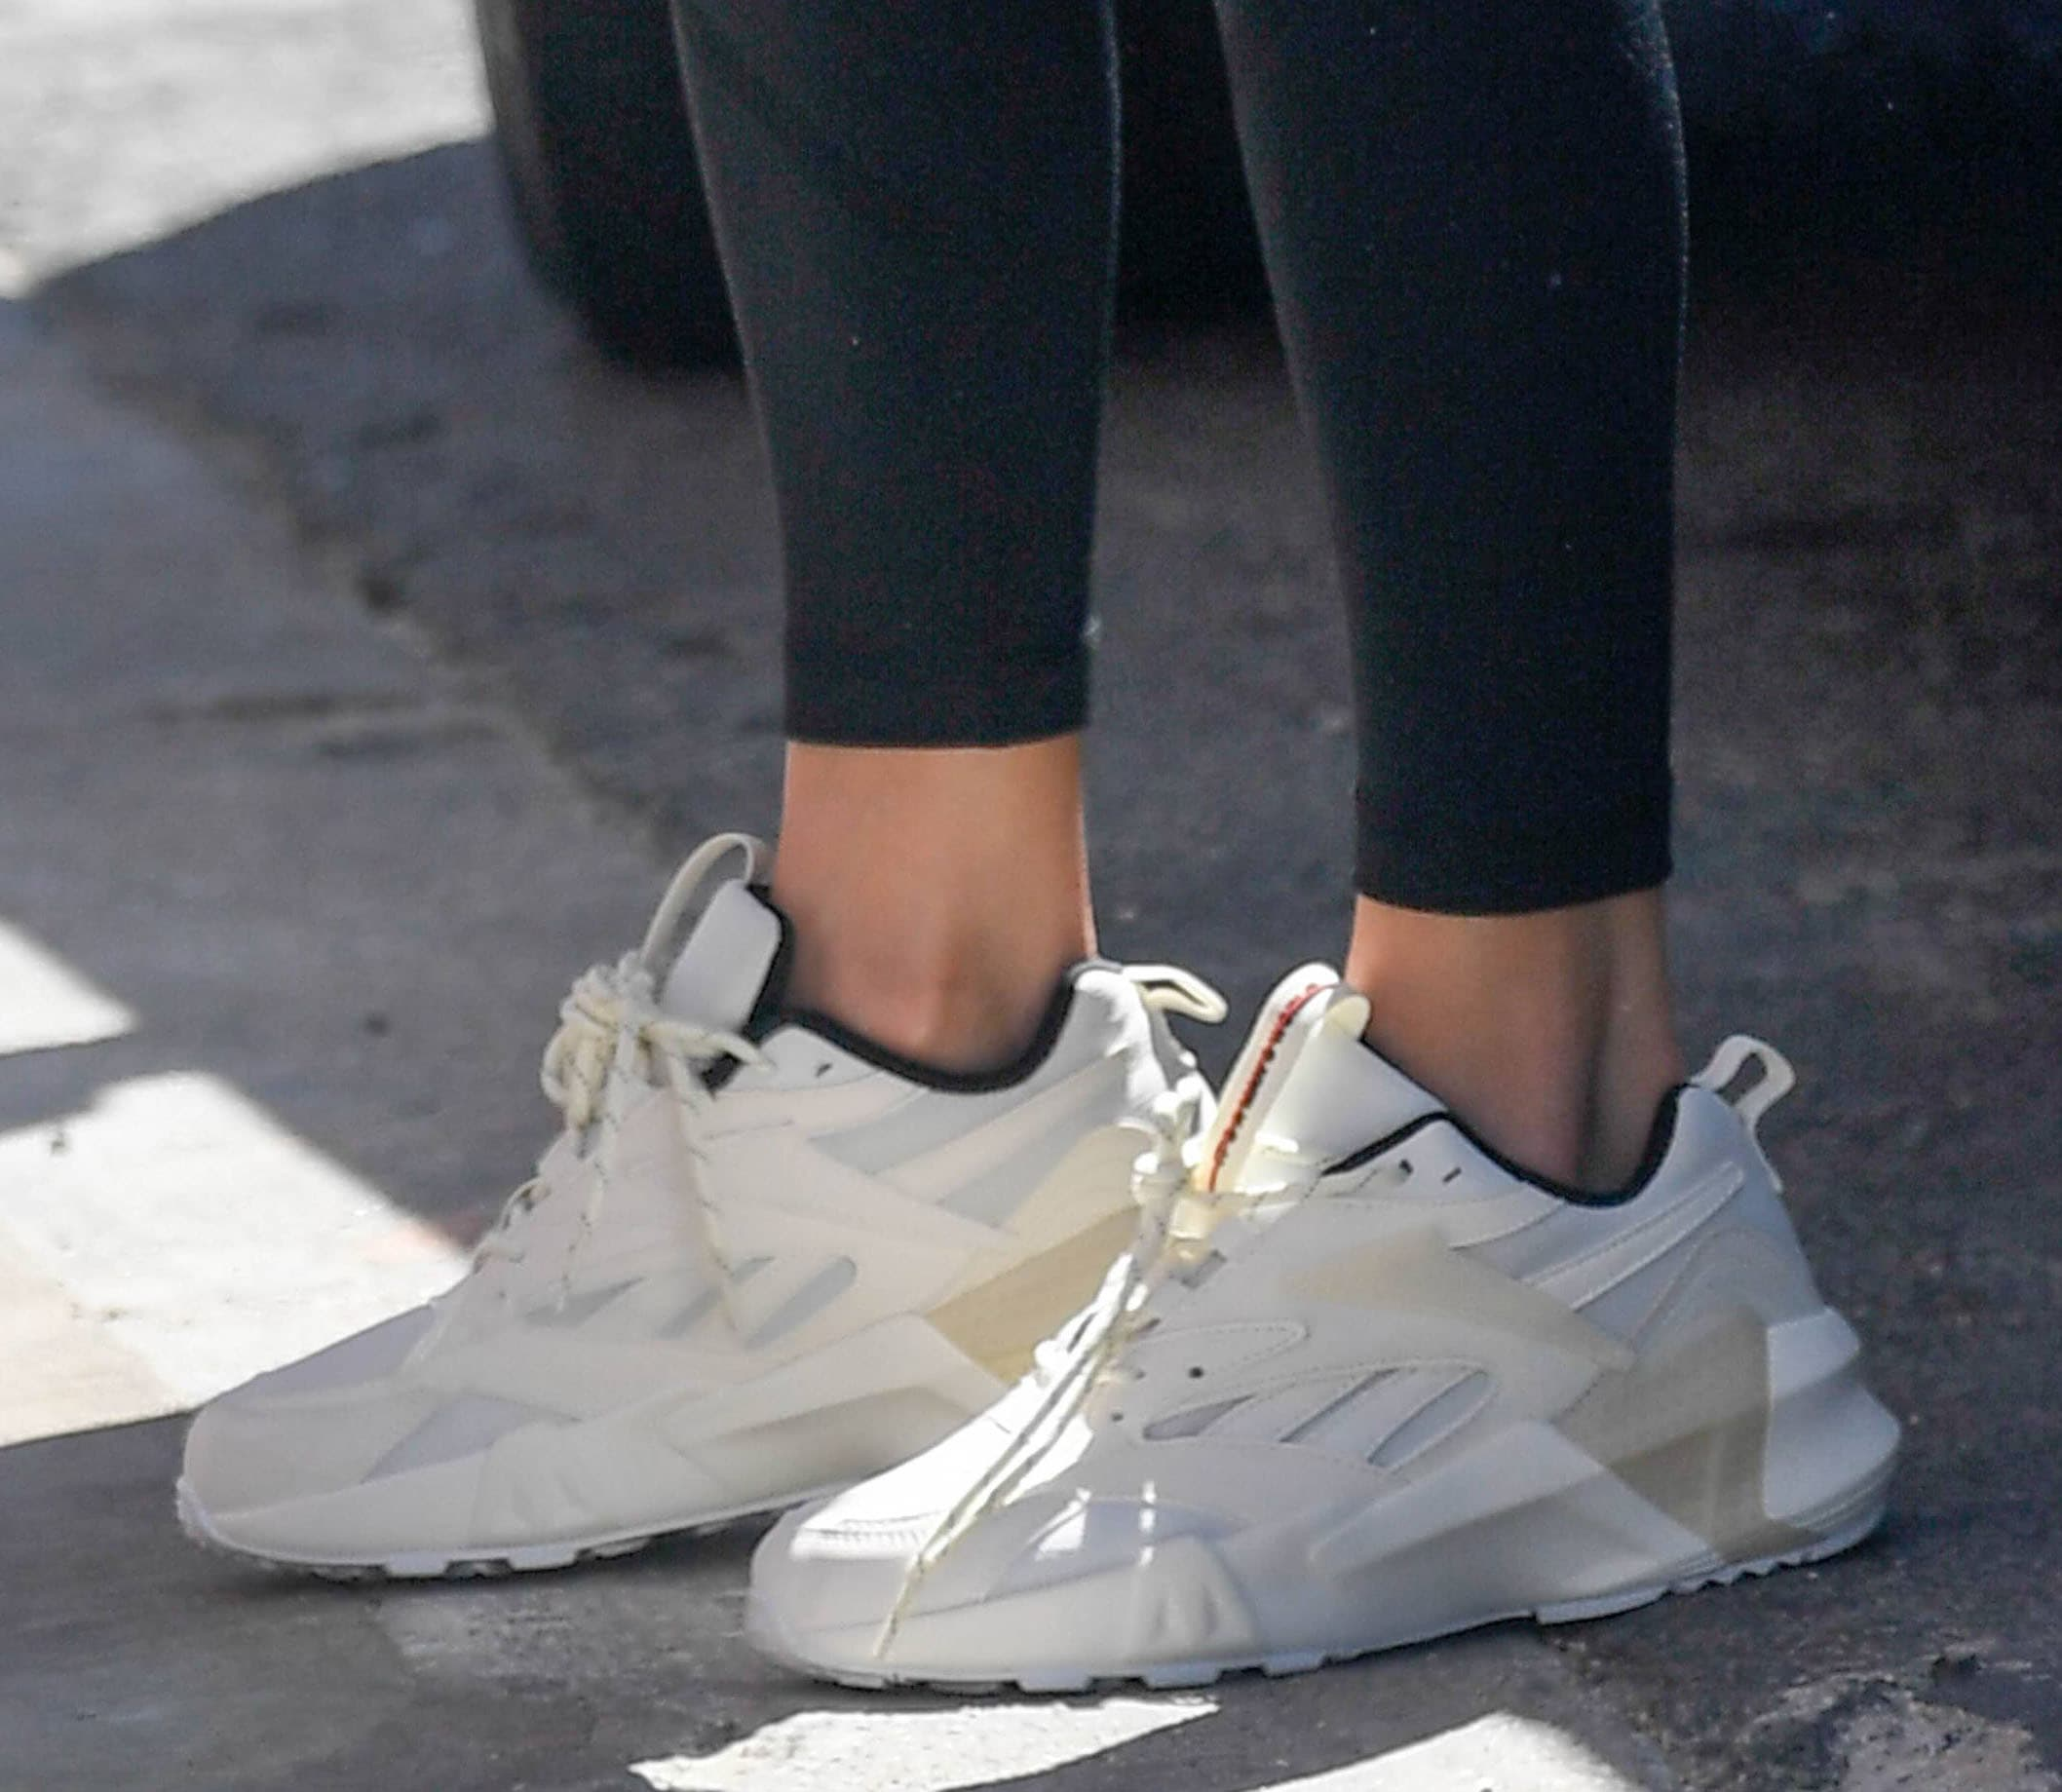 Jennifer Lopez completes her athletic outfit with Reebok Aztrek Man's World chunky white sneakers